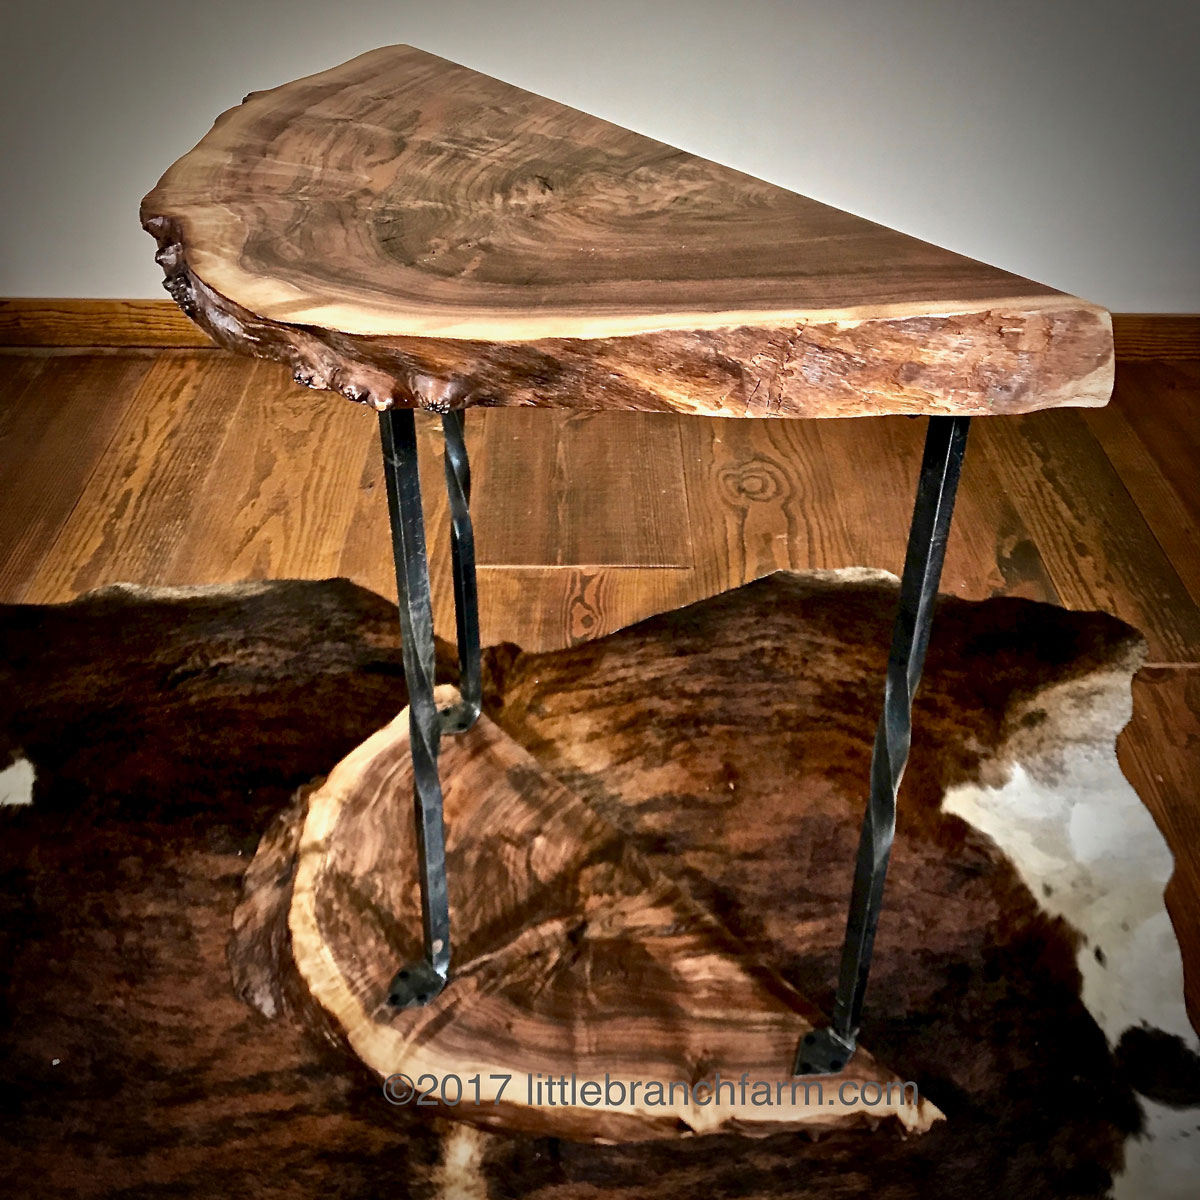 live edge wood accent table littlebranch farm brown vintage cabinet hardware small lamps lap desk dale tiffany tulip lamp pink umbrella tablecloth kitchen breakfast drop leaf with